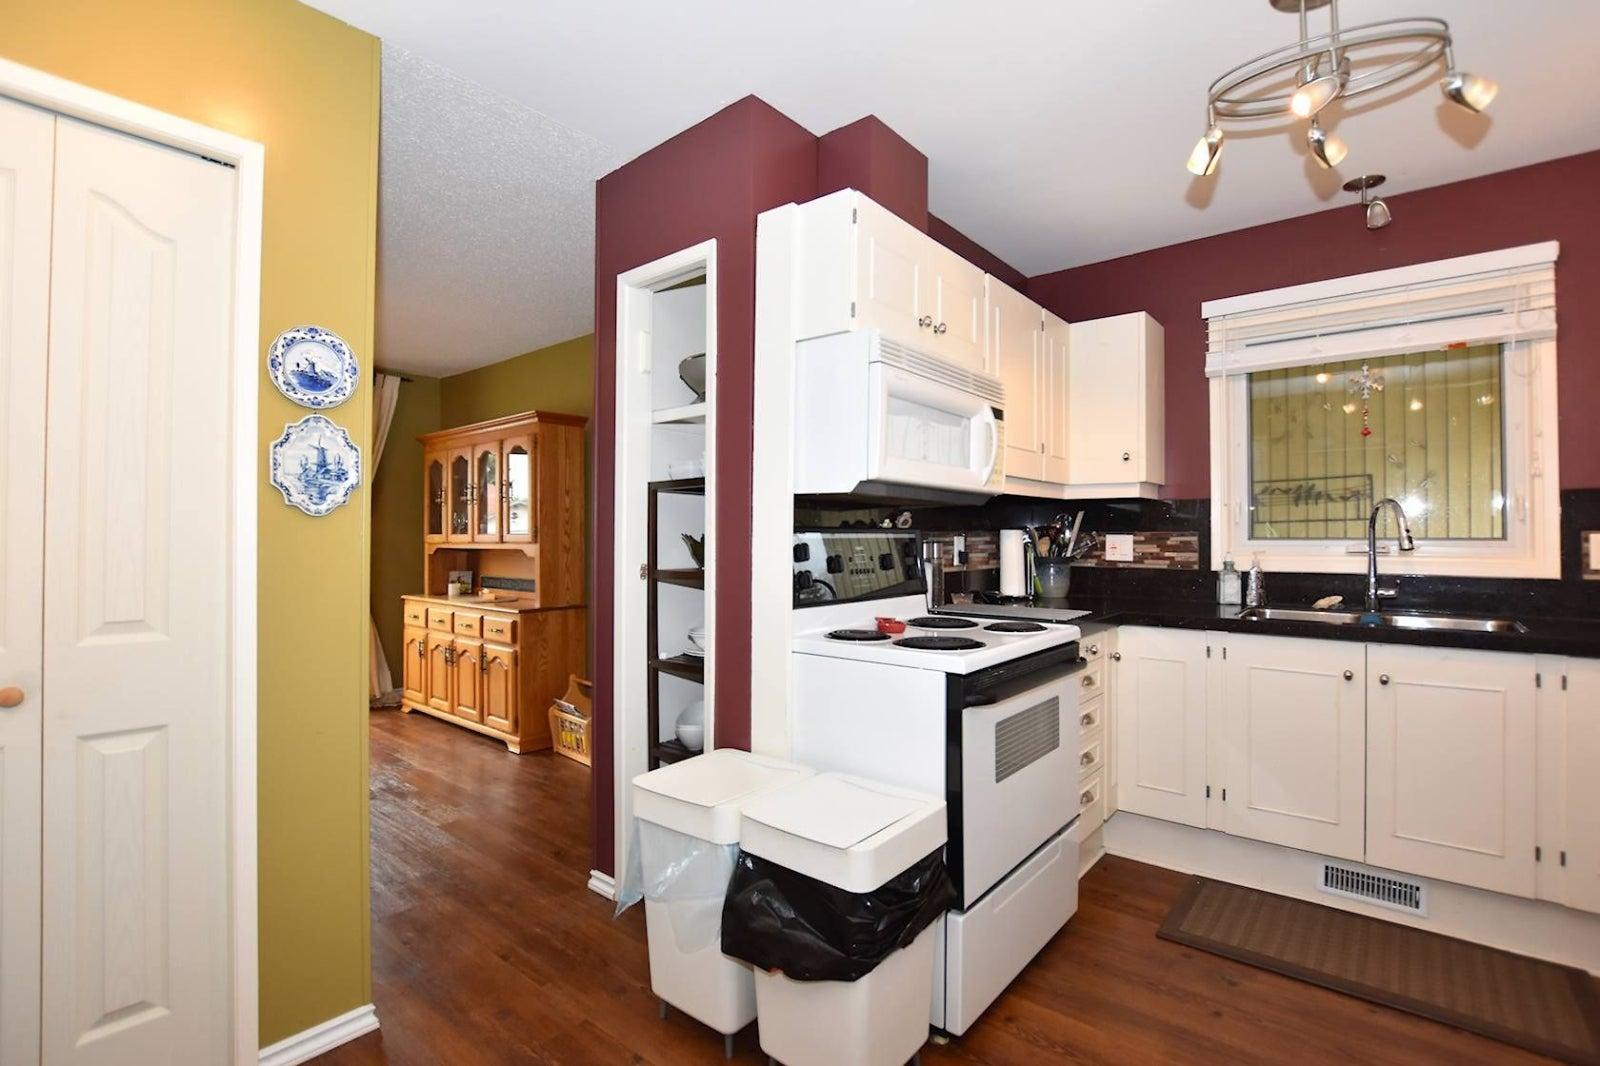 11528 141 Ave. NW - Carlisle Detached Single Family for sale, 3 Bedrooms (E4160650) #4